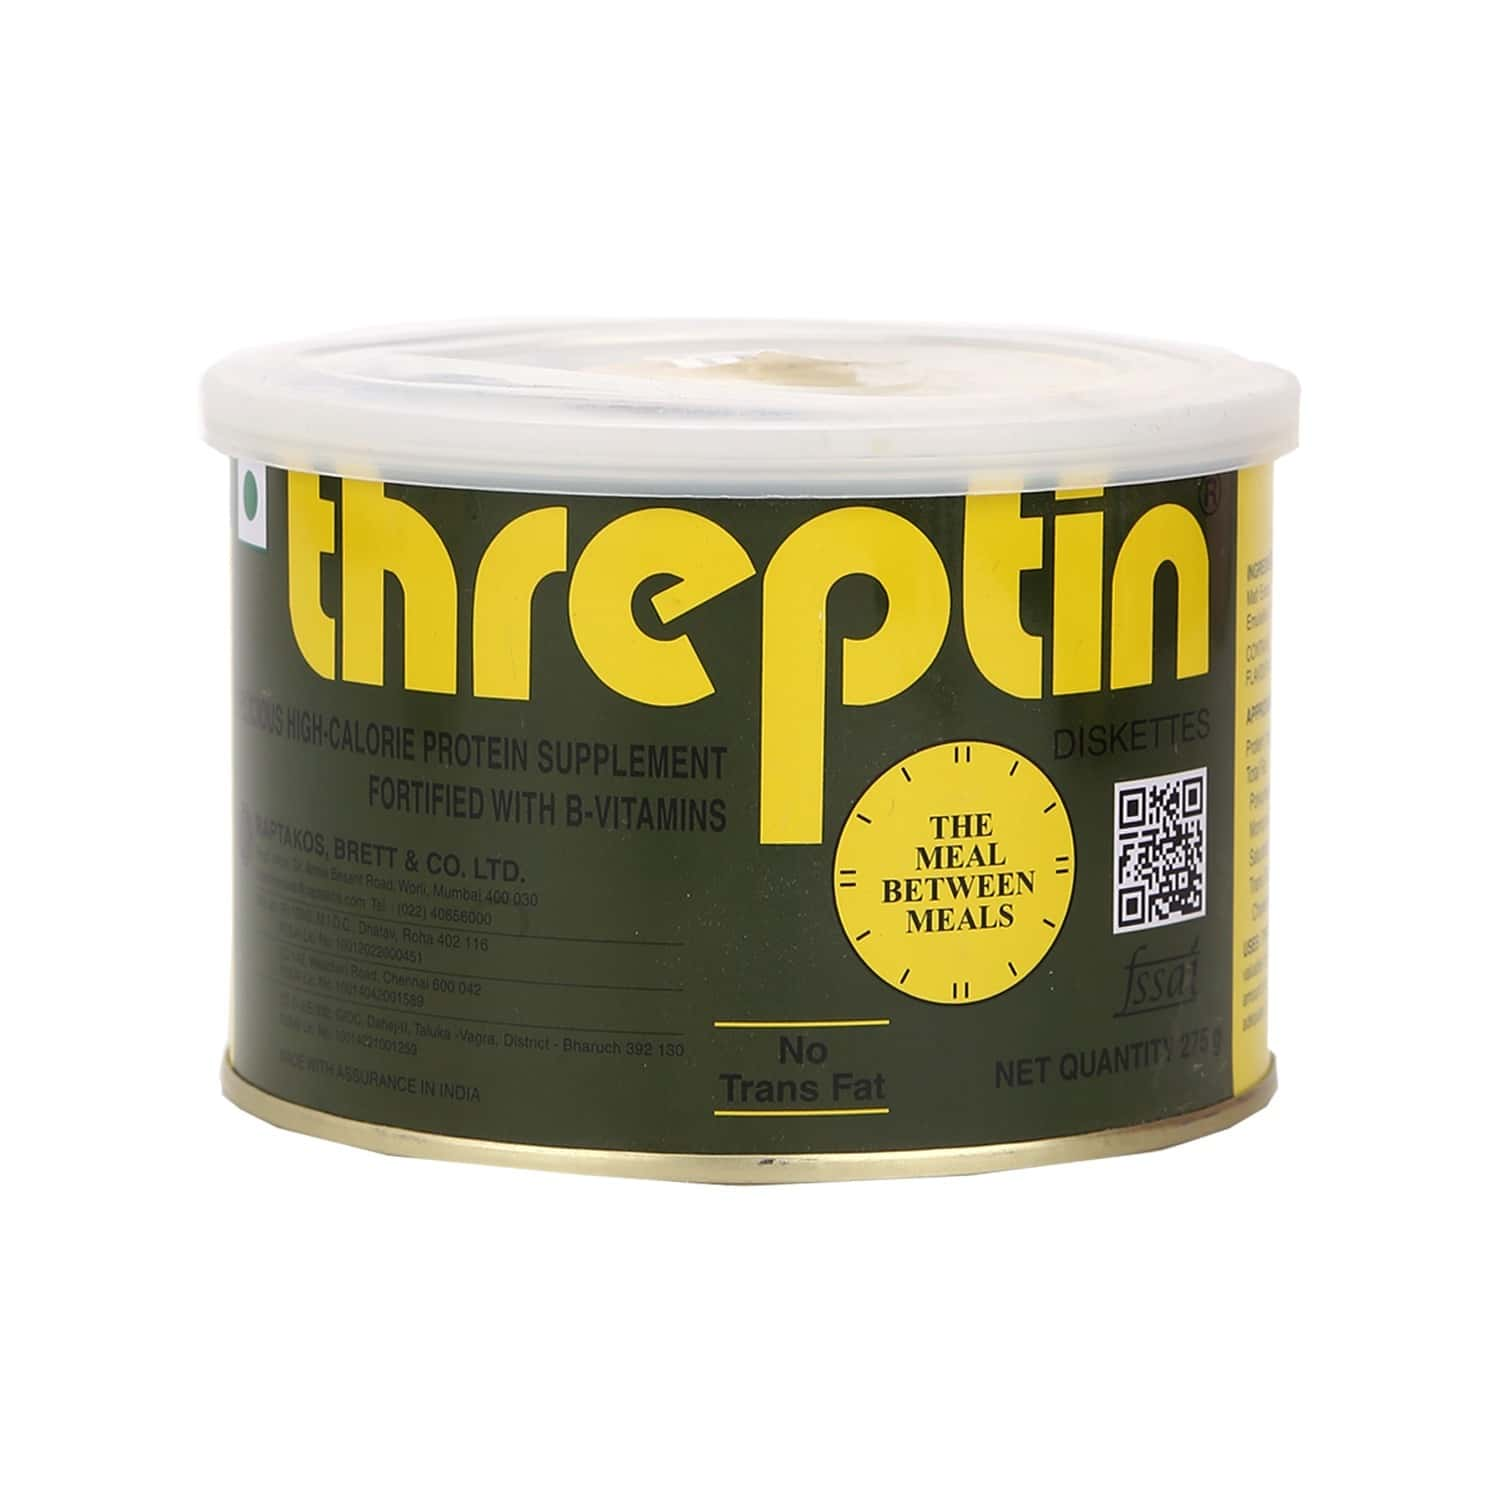 Threptin Nutrition Biscuits Tin Of 275 G